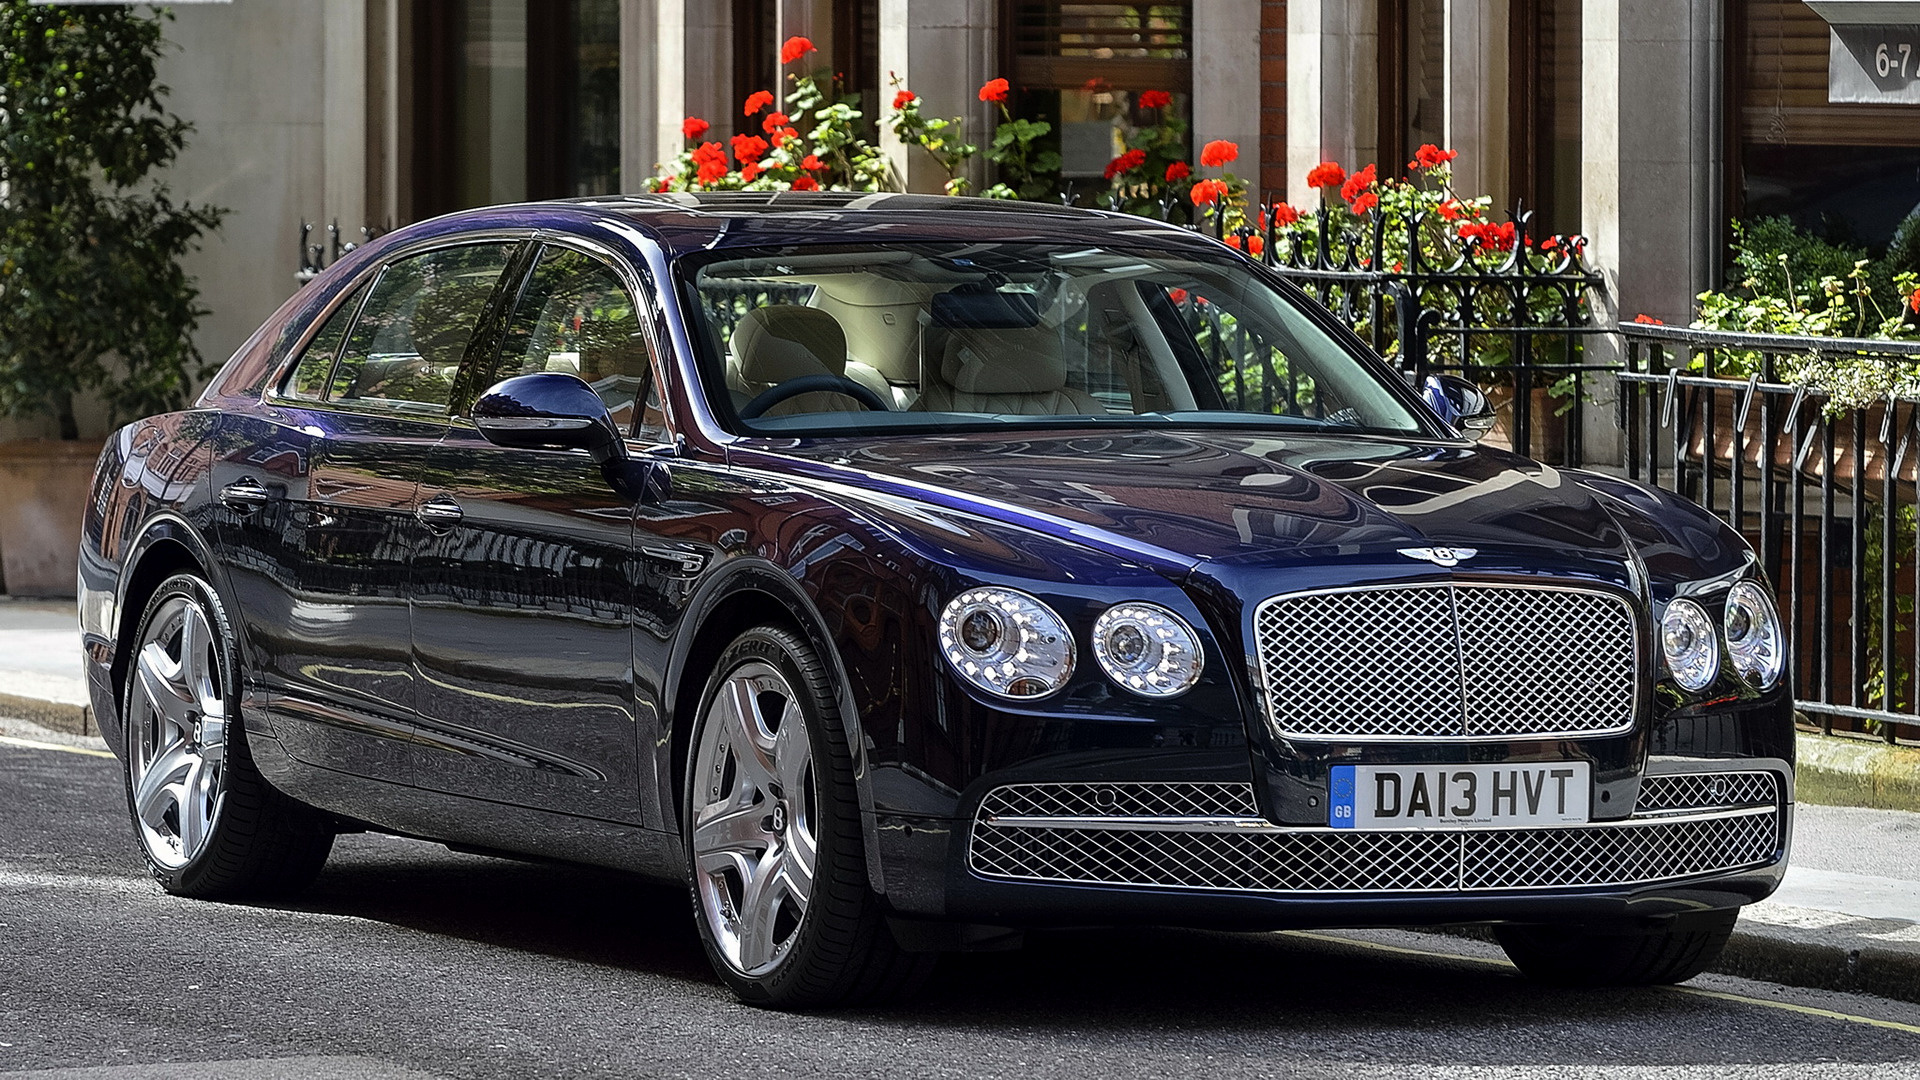 2013 Bentley Flying Spur UK   Wallpapers and HD Images Car Pixel 1920x1080